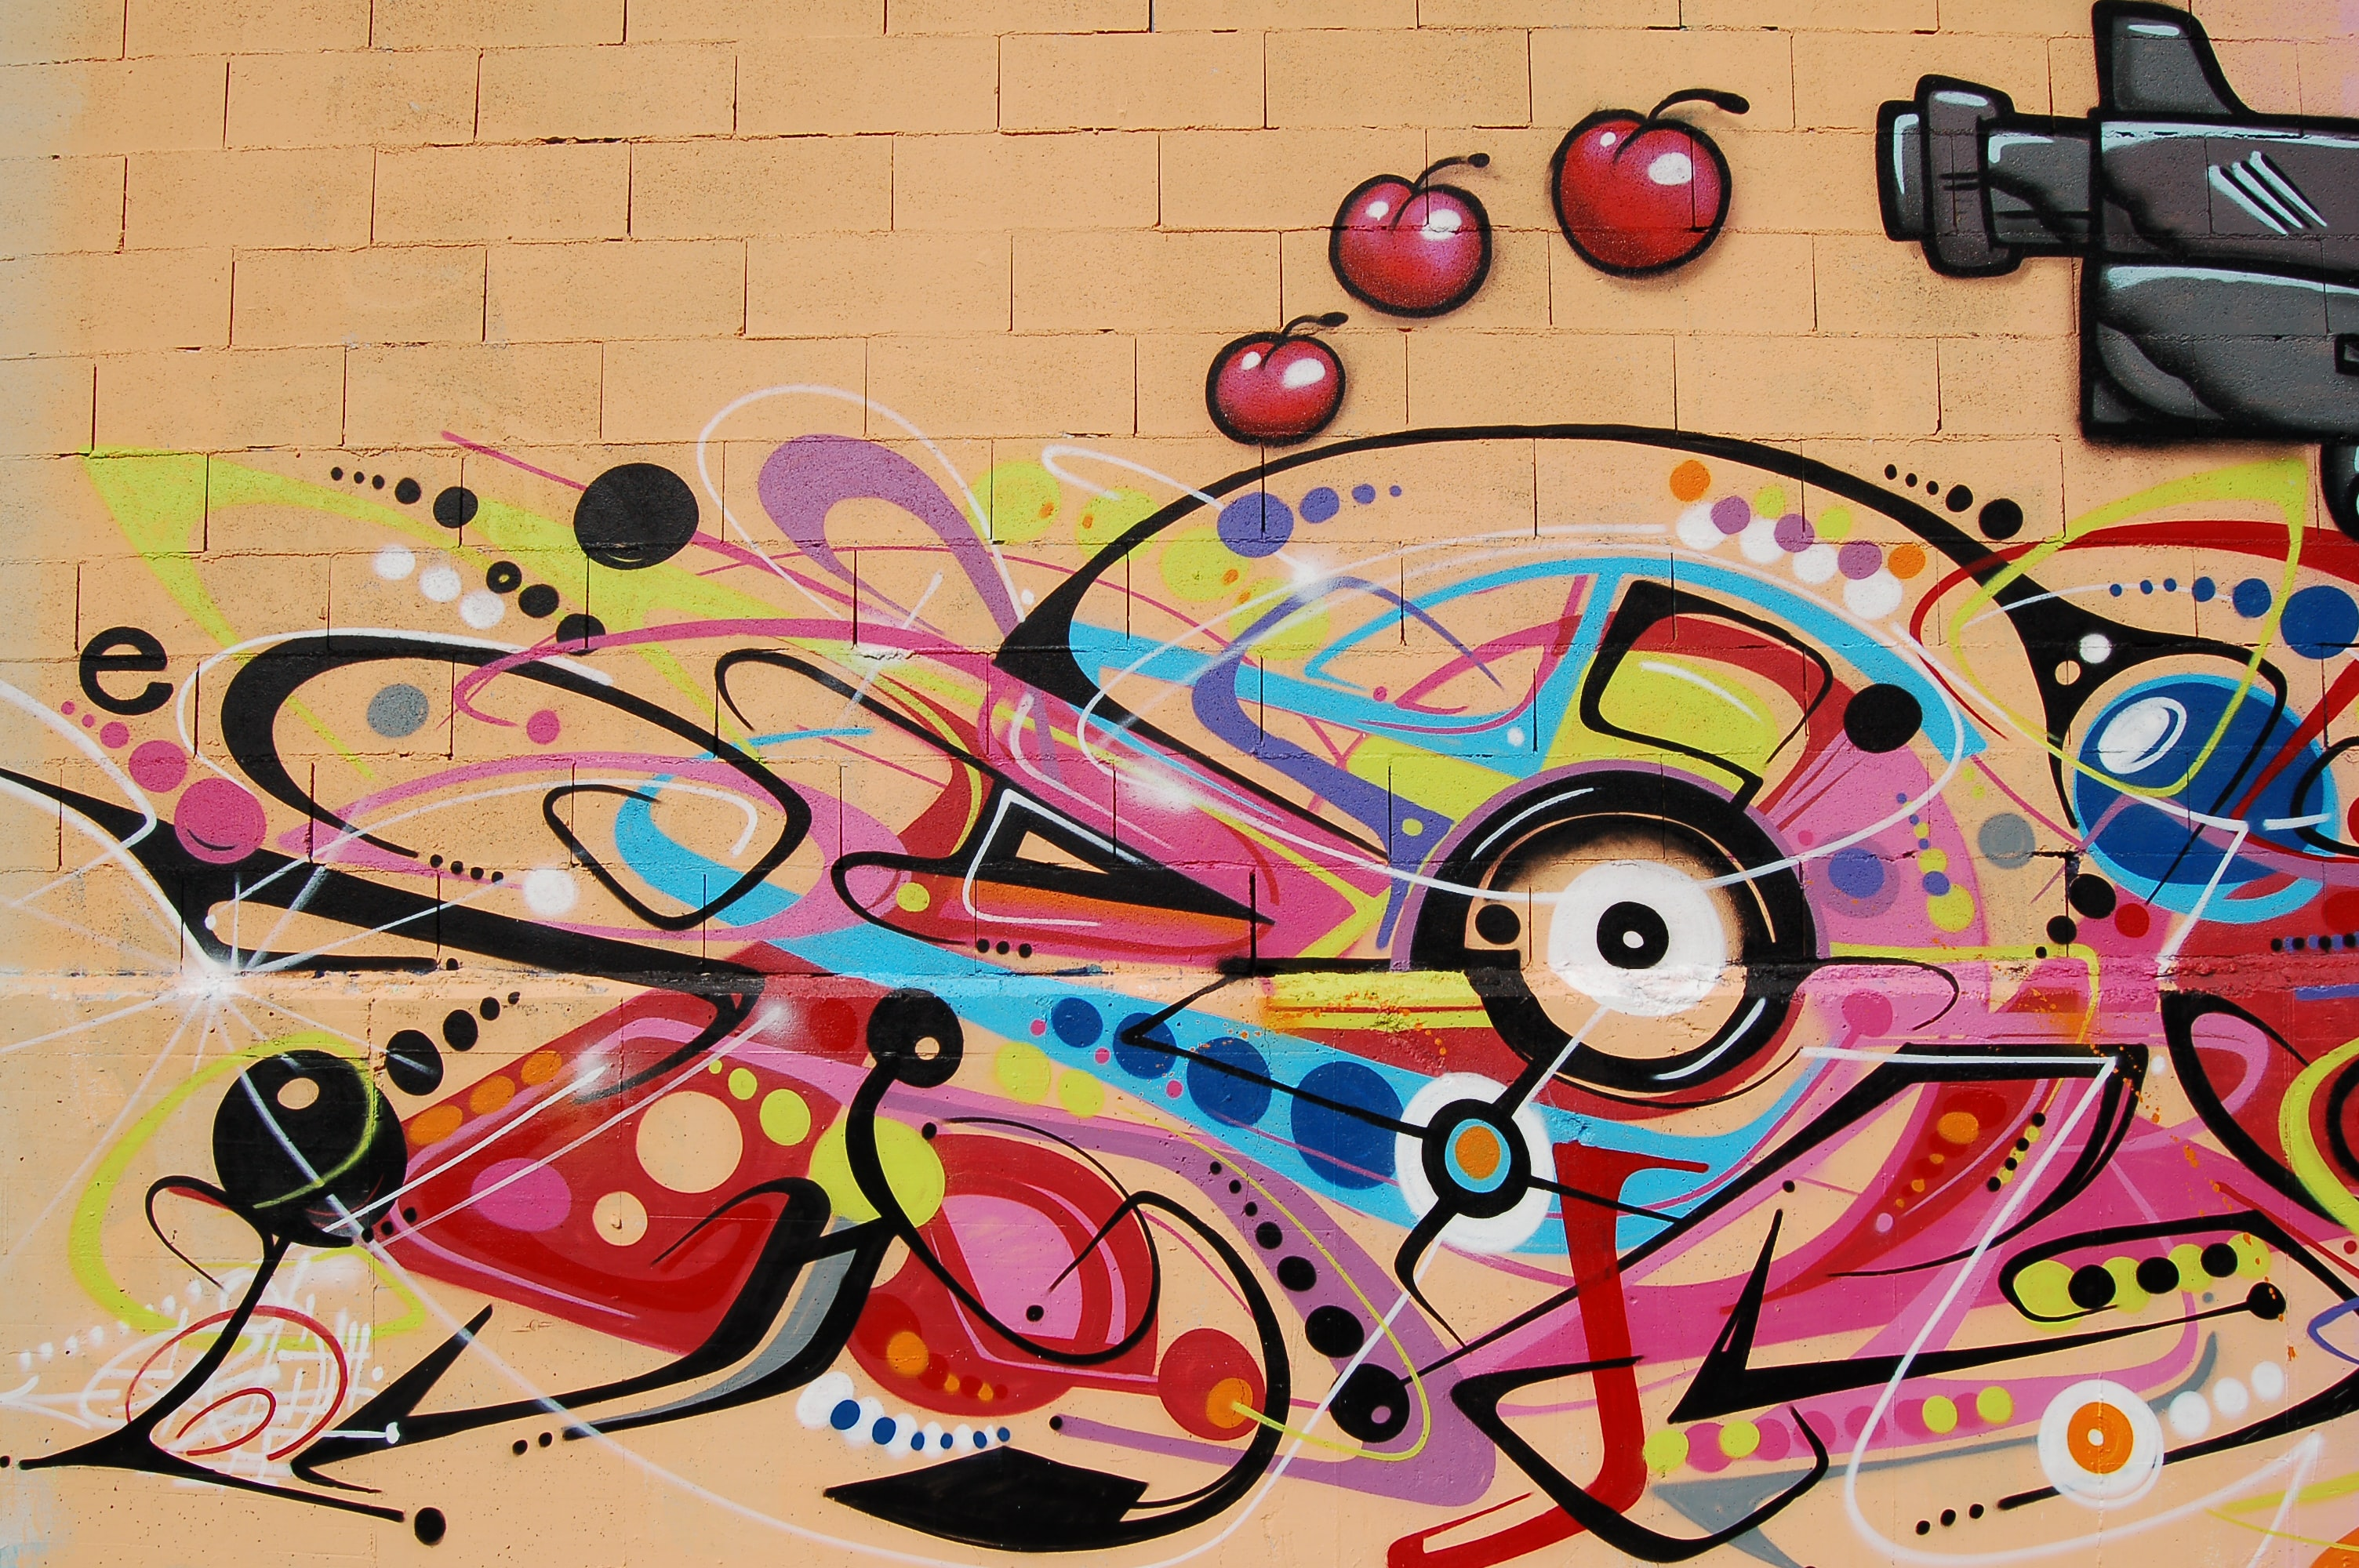 An abstract graffiti wall painting with cherries.